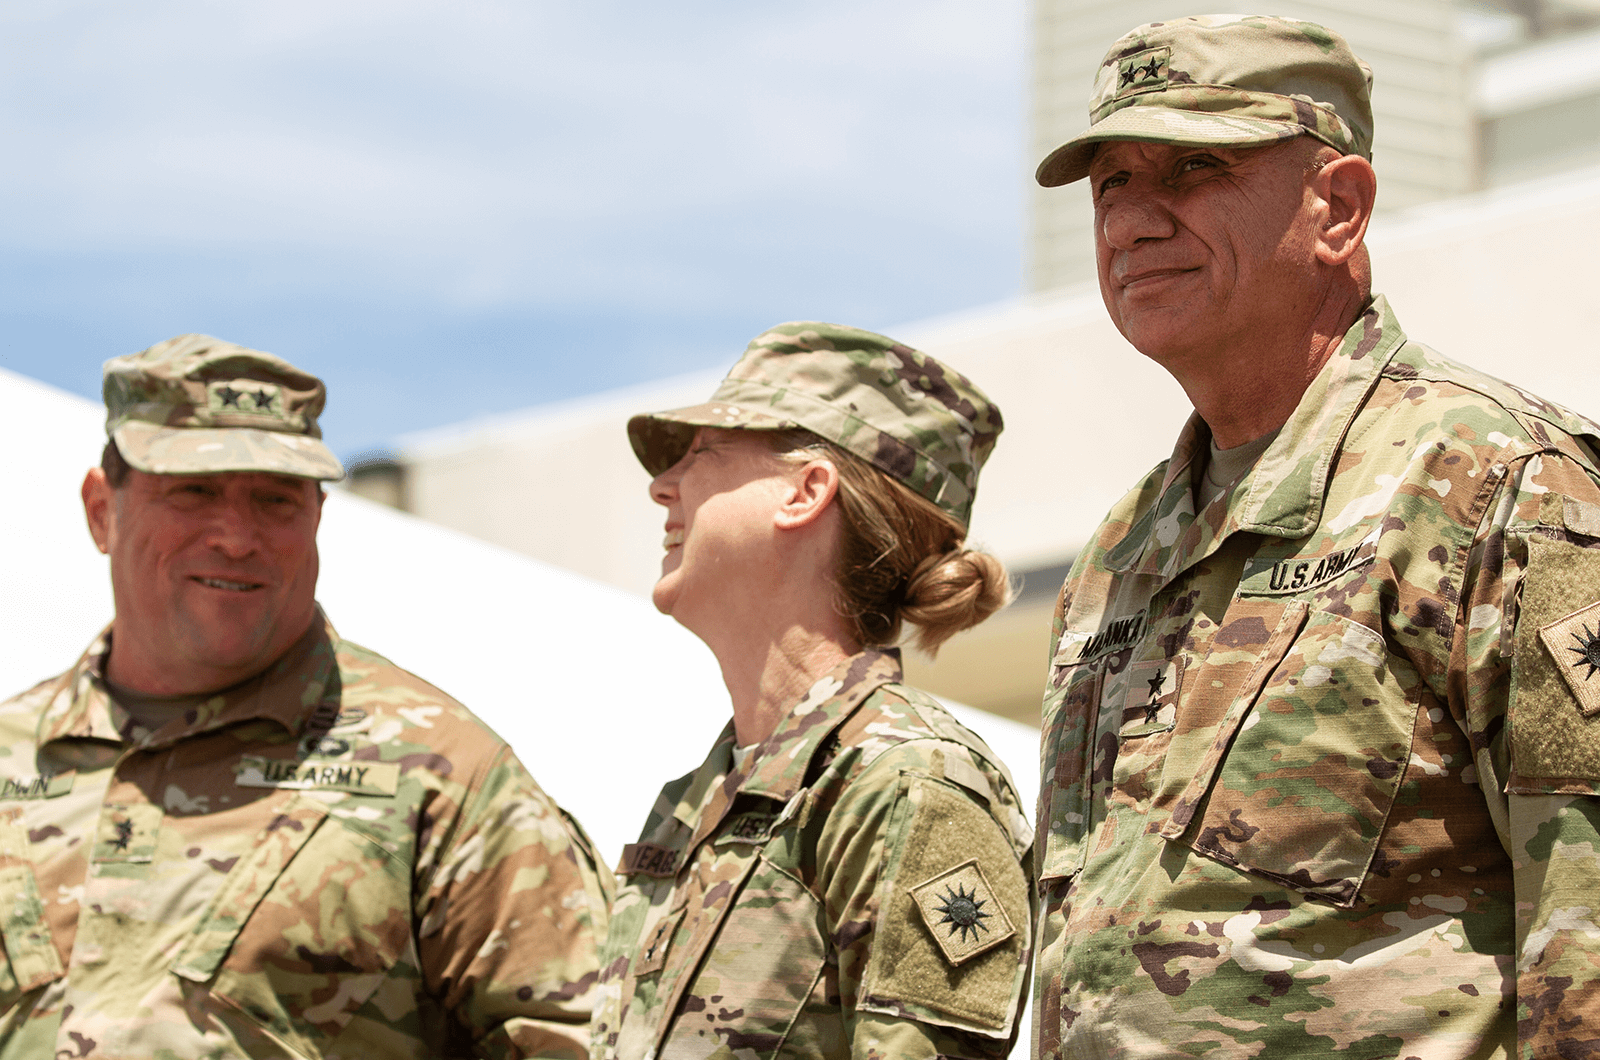 U.S. Army Maj. Gen. Laura Yeager takes command of the California Army National Guard's 40th Infantry Division during a ceremony on June 29, 2019, at Joint Forces Training Base in Los Alamitos, California. Yeager is the first woman to command a U.S. Army infantry division.    *Photos by the California National Guard